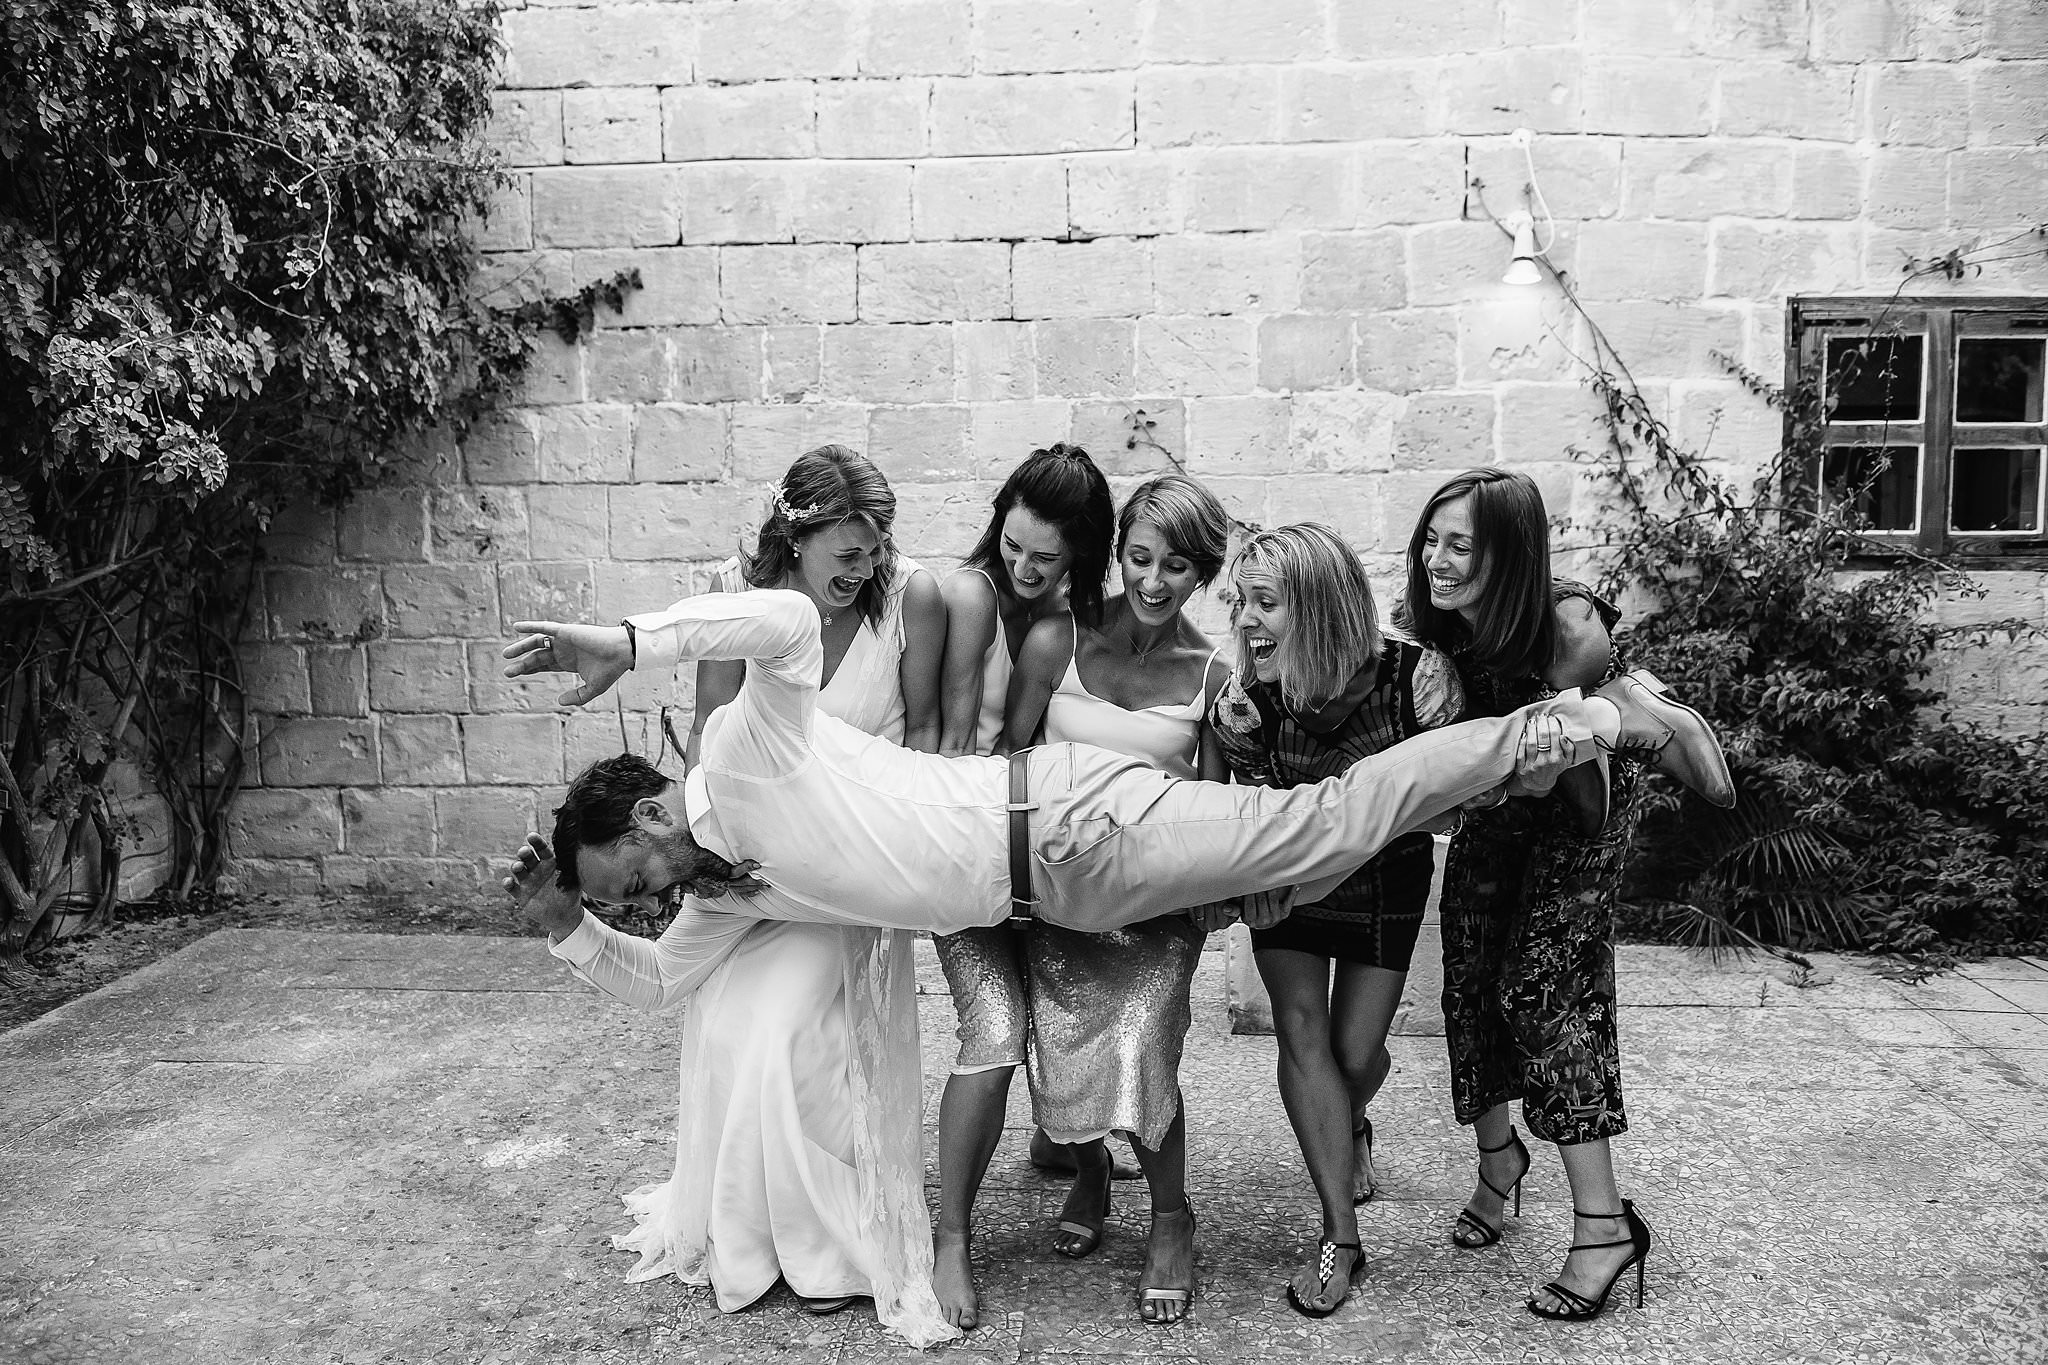 bride-and-her-friends-having-fun-with-the-groom-photo-by-shane-p-watts-photography